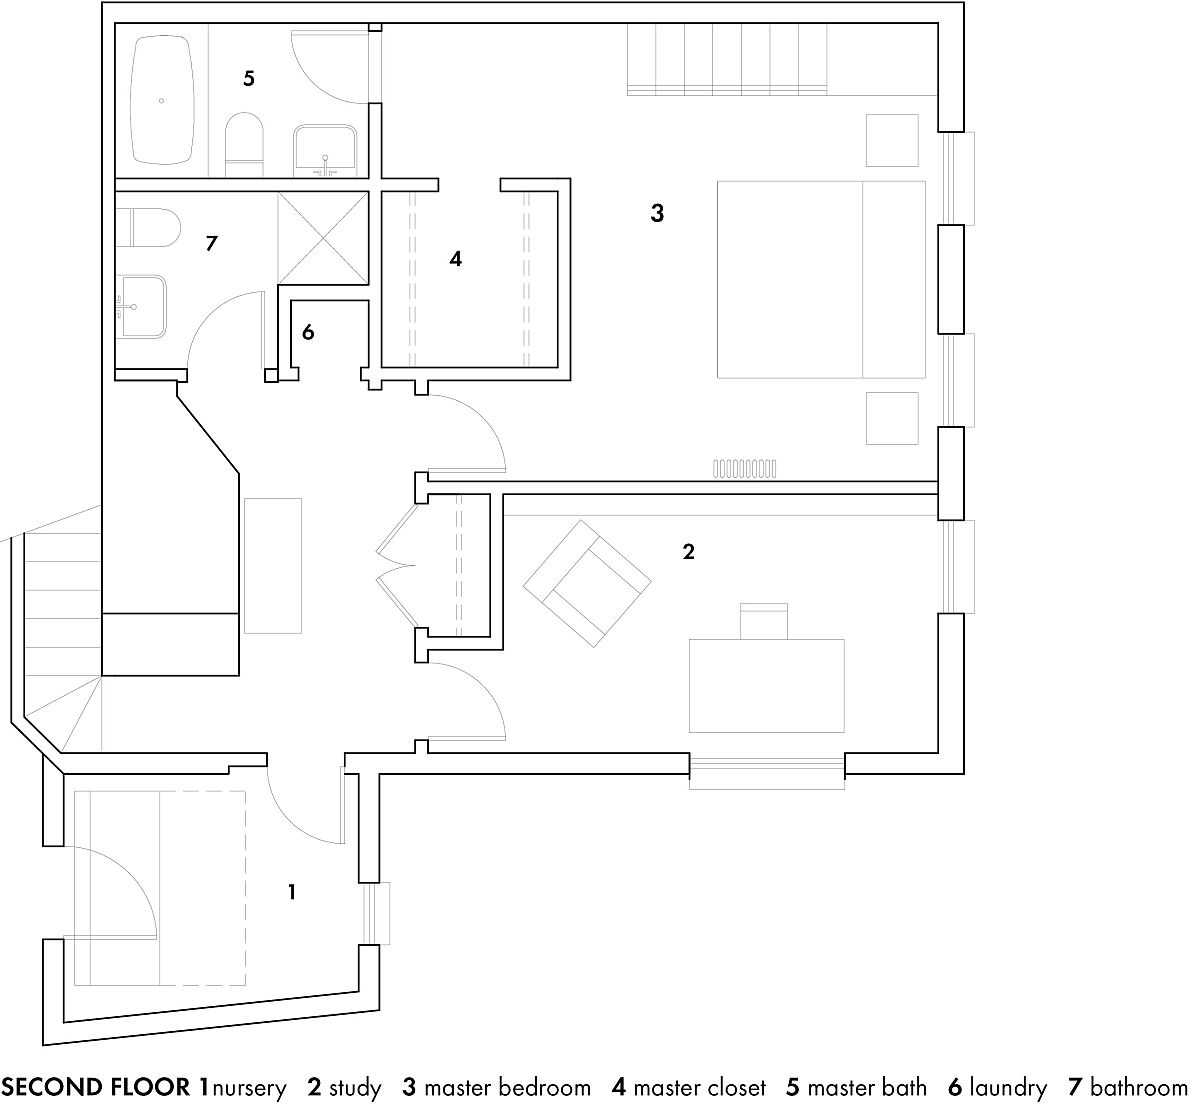 Second level floor plan with nursery and master bedroom